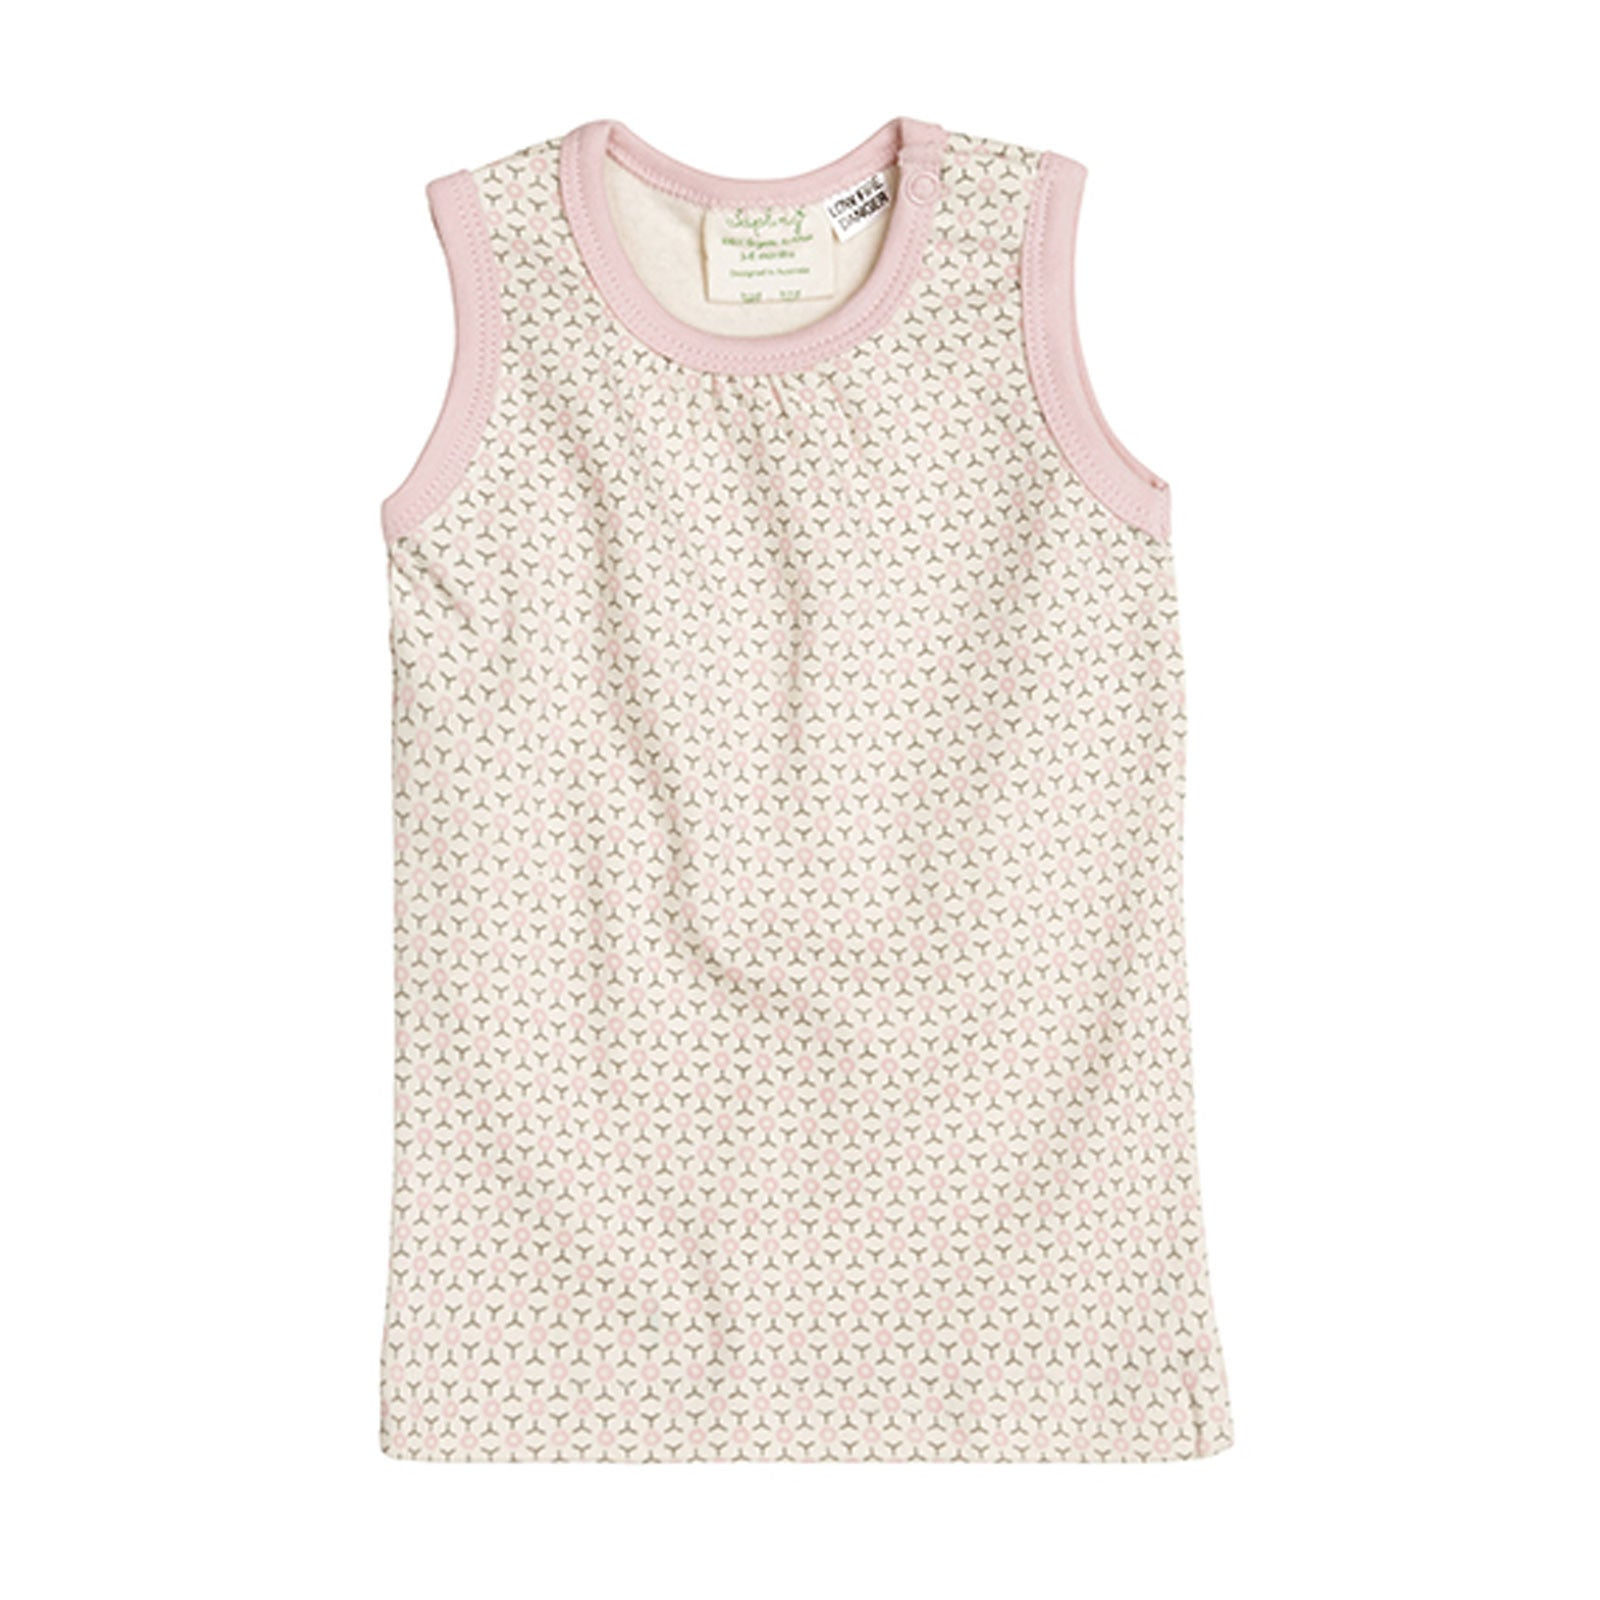 Sapling Child Essentials Tank Sapling Child Baby & Toddler Clothing 0-3M / Dusty Pink at Little Earth Nest Eco Shop